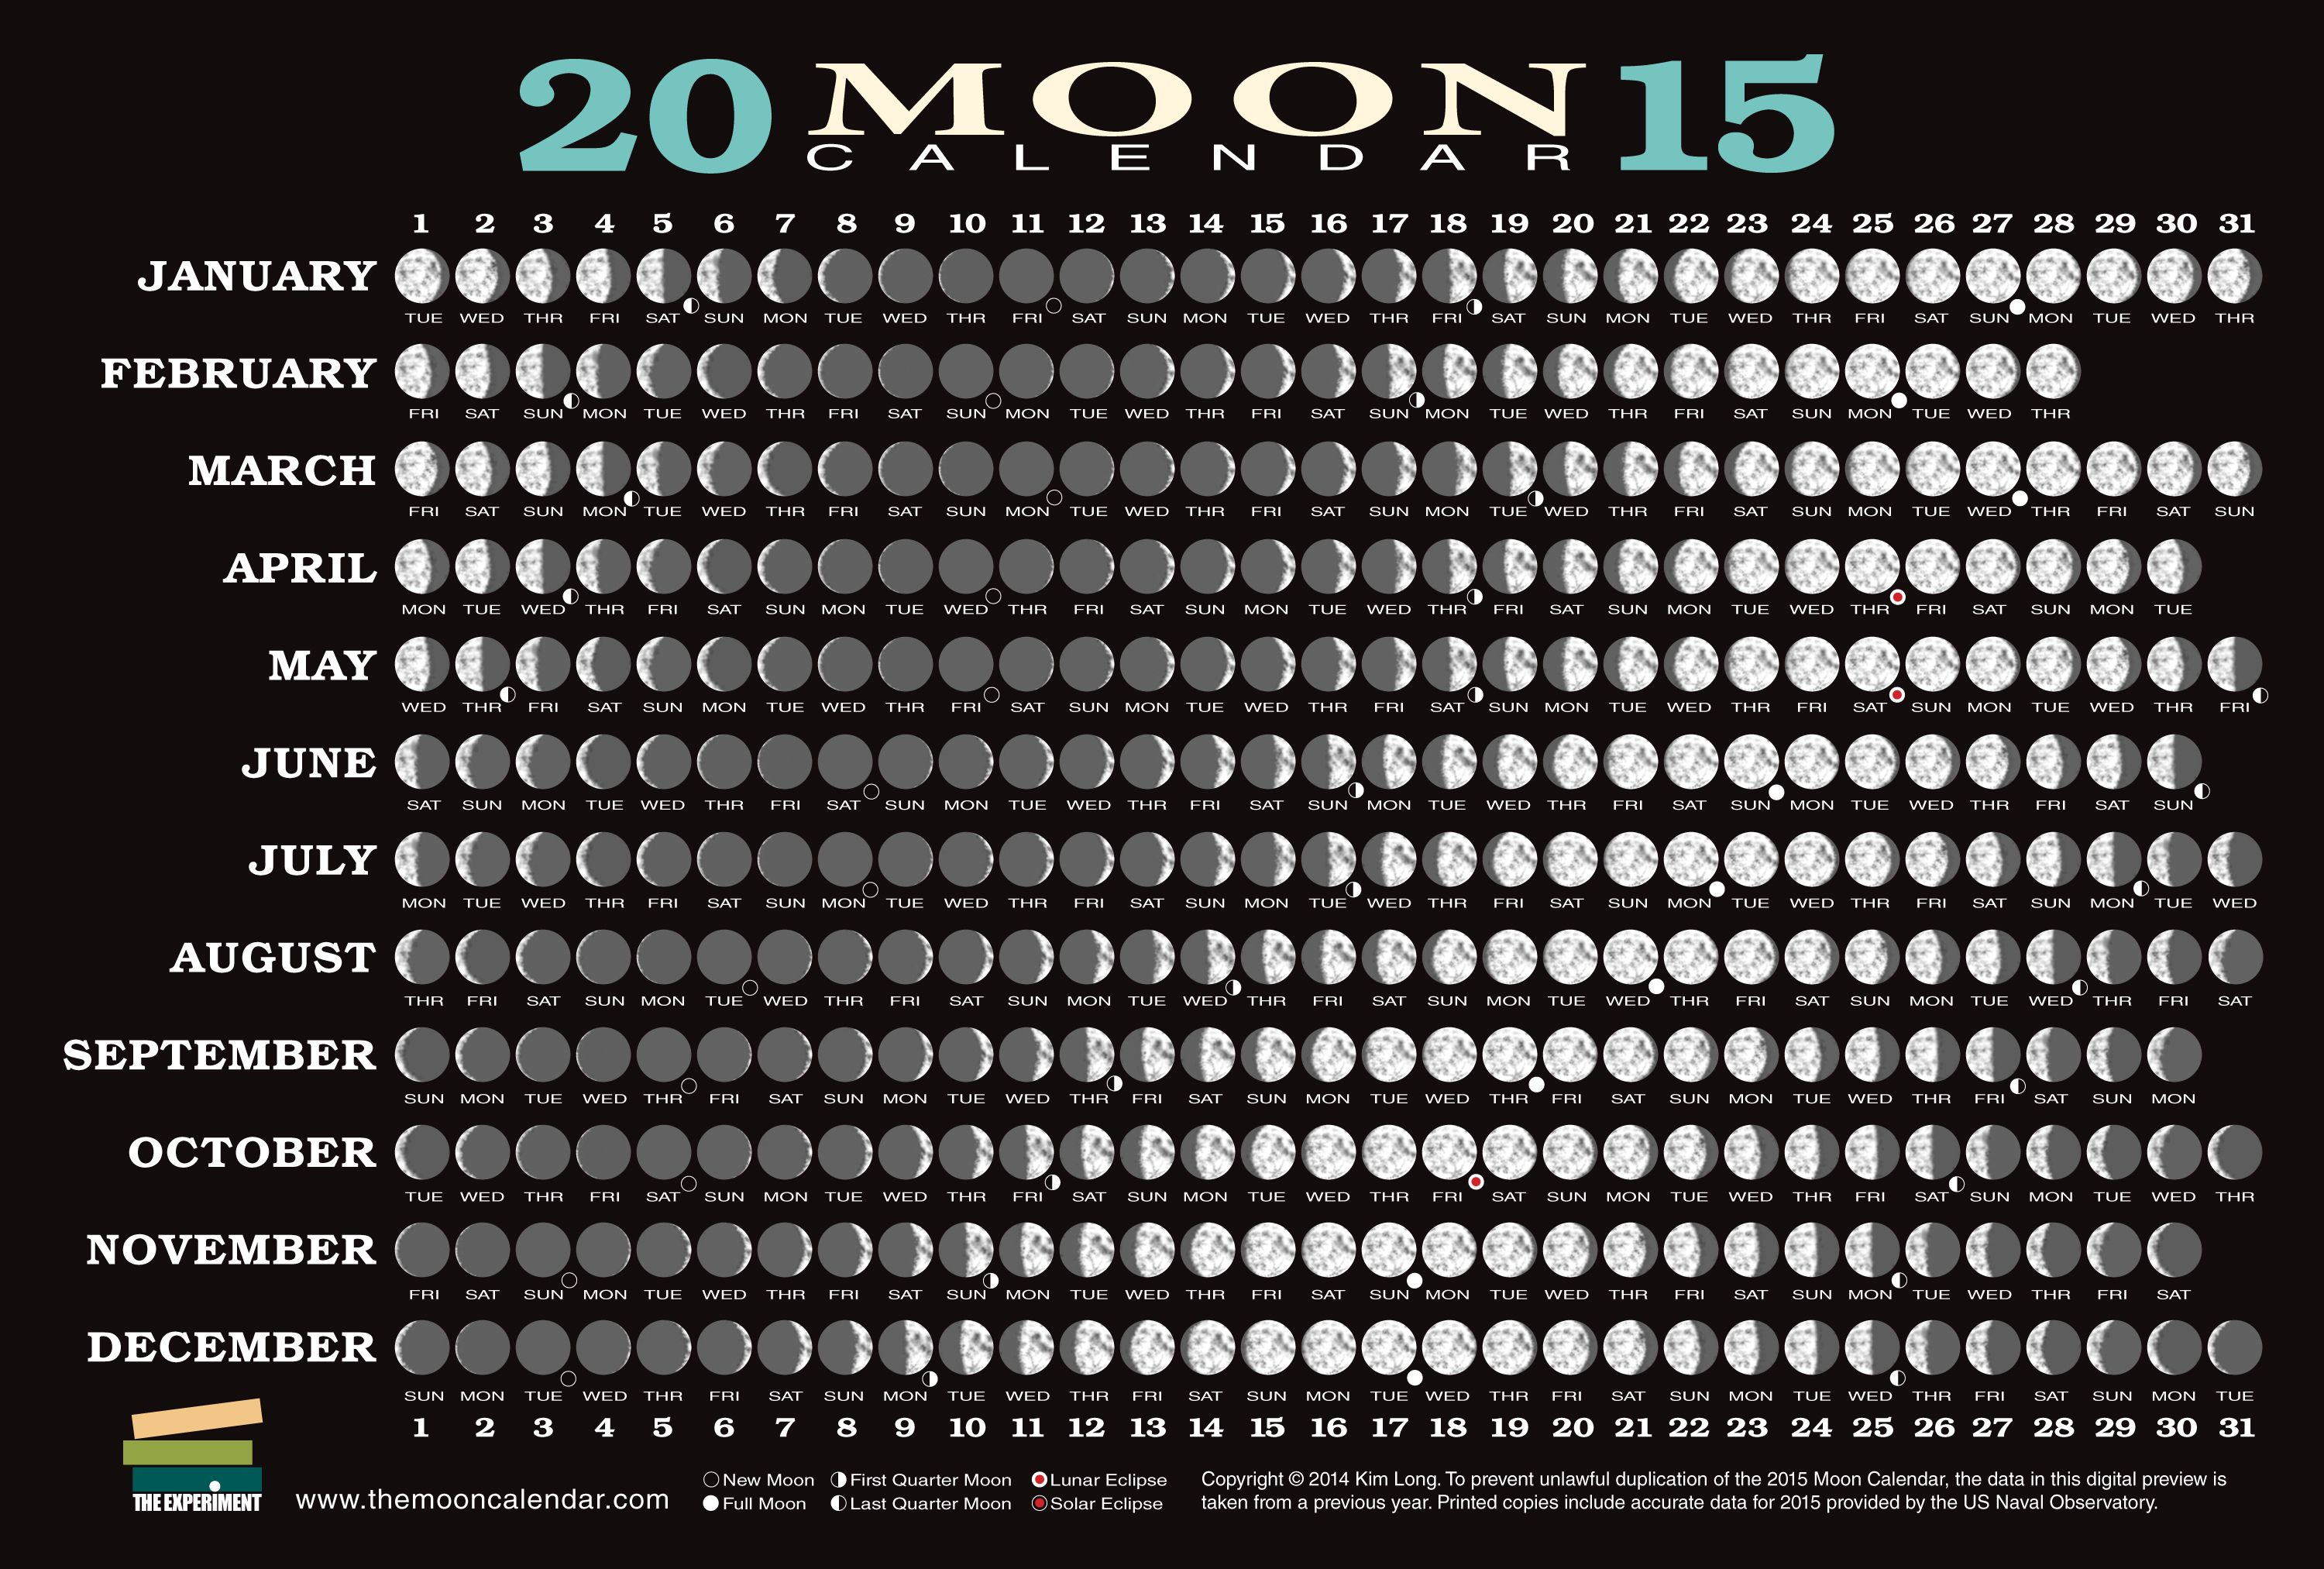 Moon Phases A Must For Hunting With Images Moon Calendar Moon